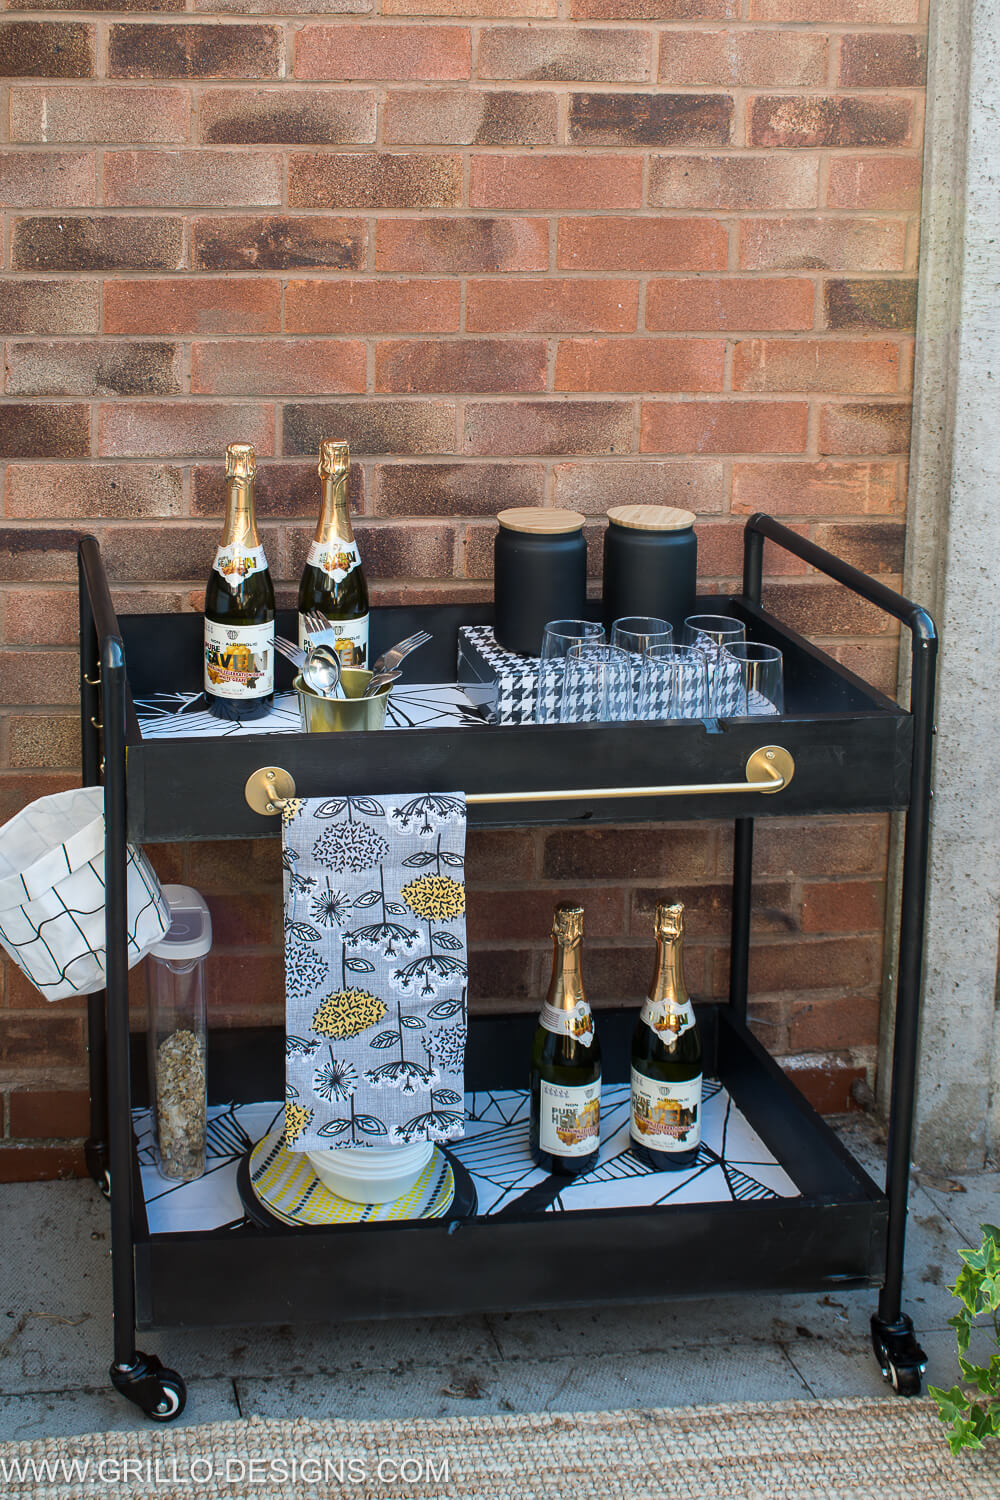 Build an outdoor bar cart from copper pipes / grillo designs